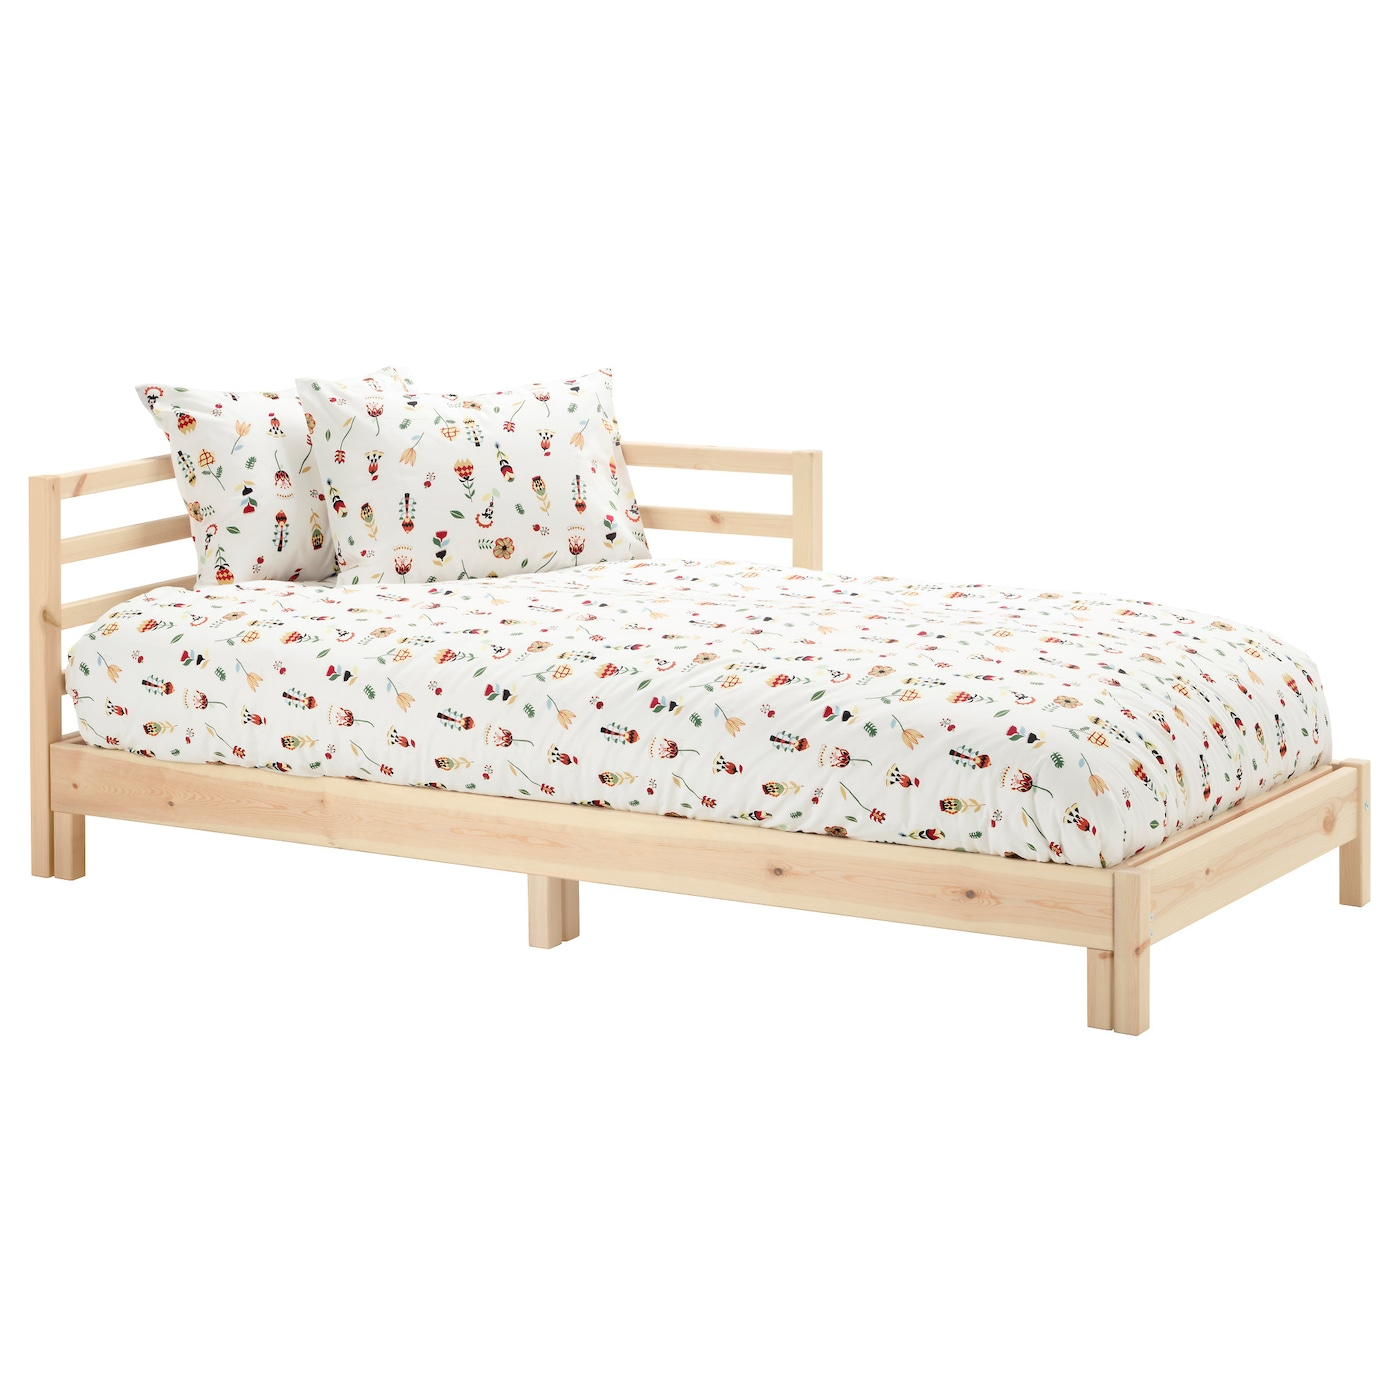 IKEA TARVA day-bed frame The backrest mounts on the right or the left side of the day-bed.